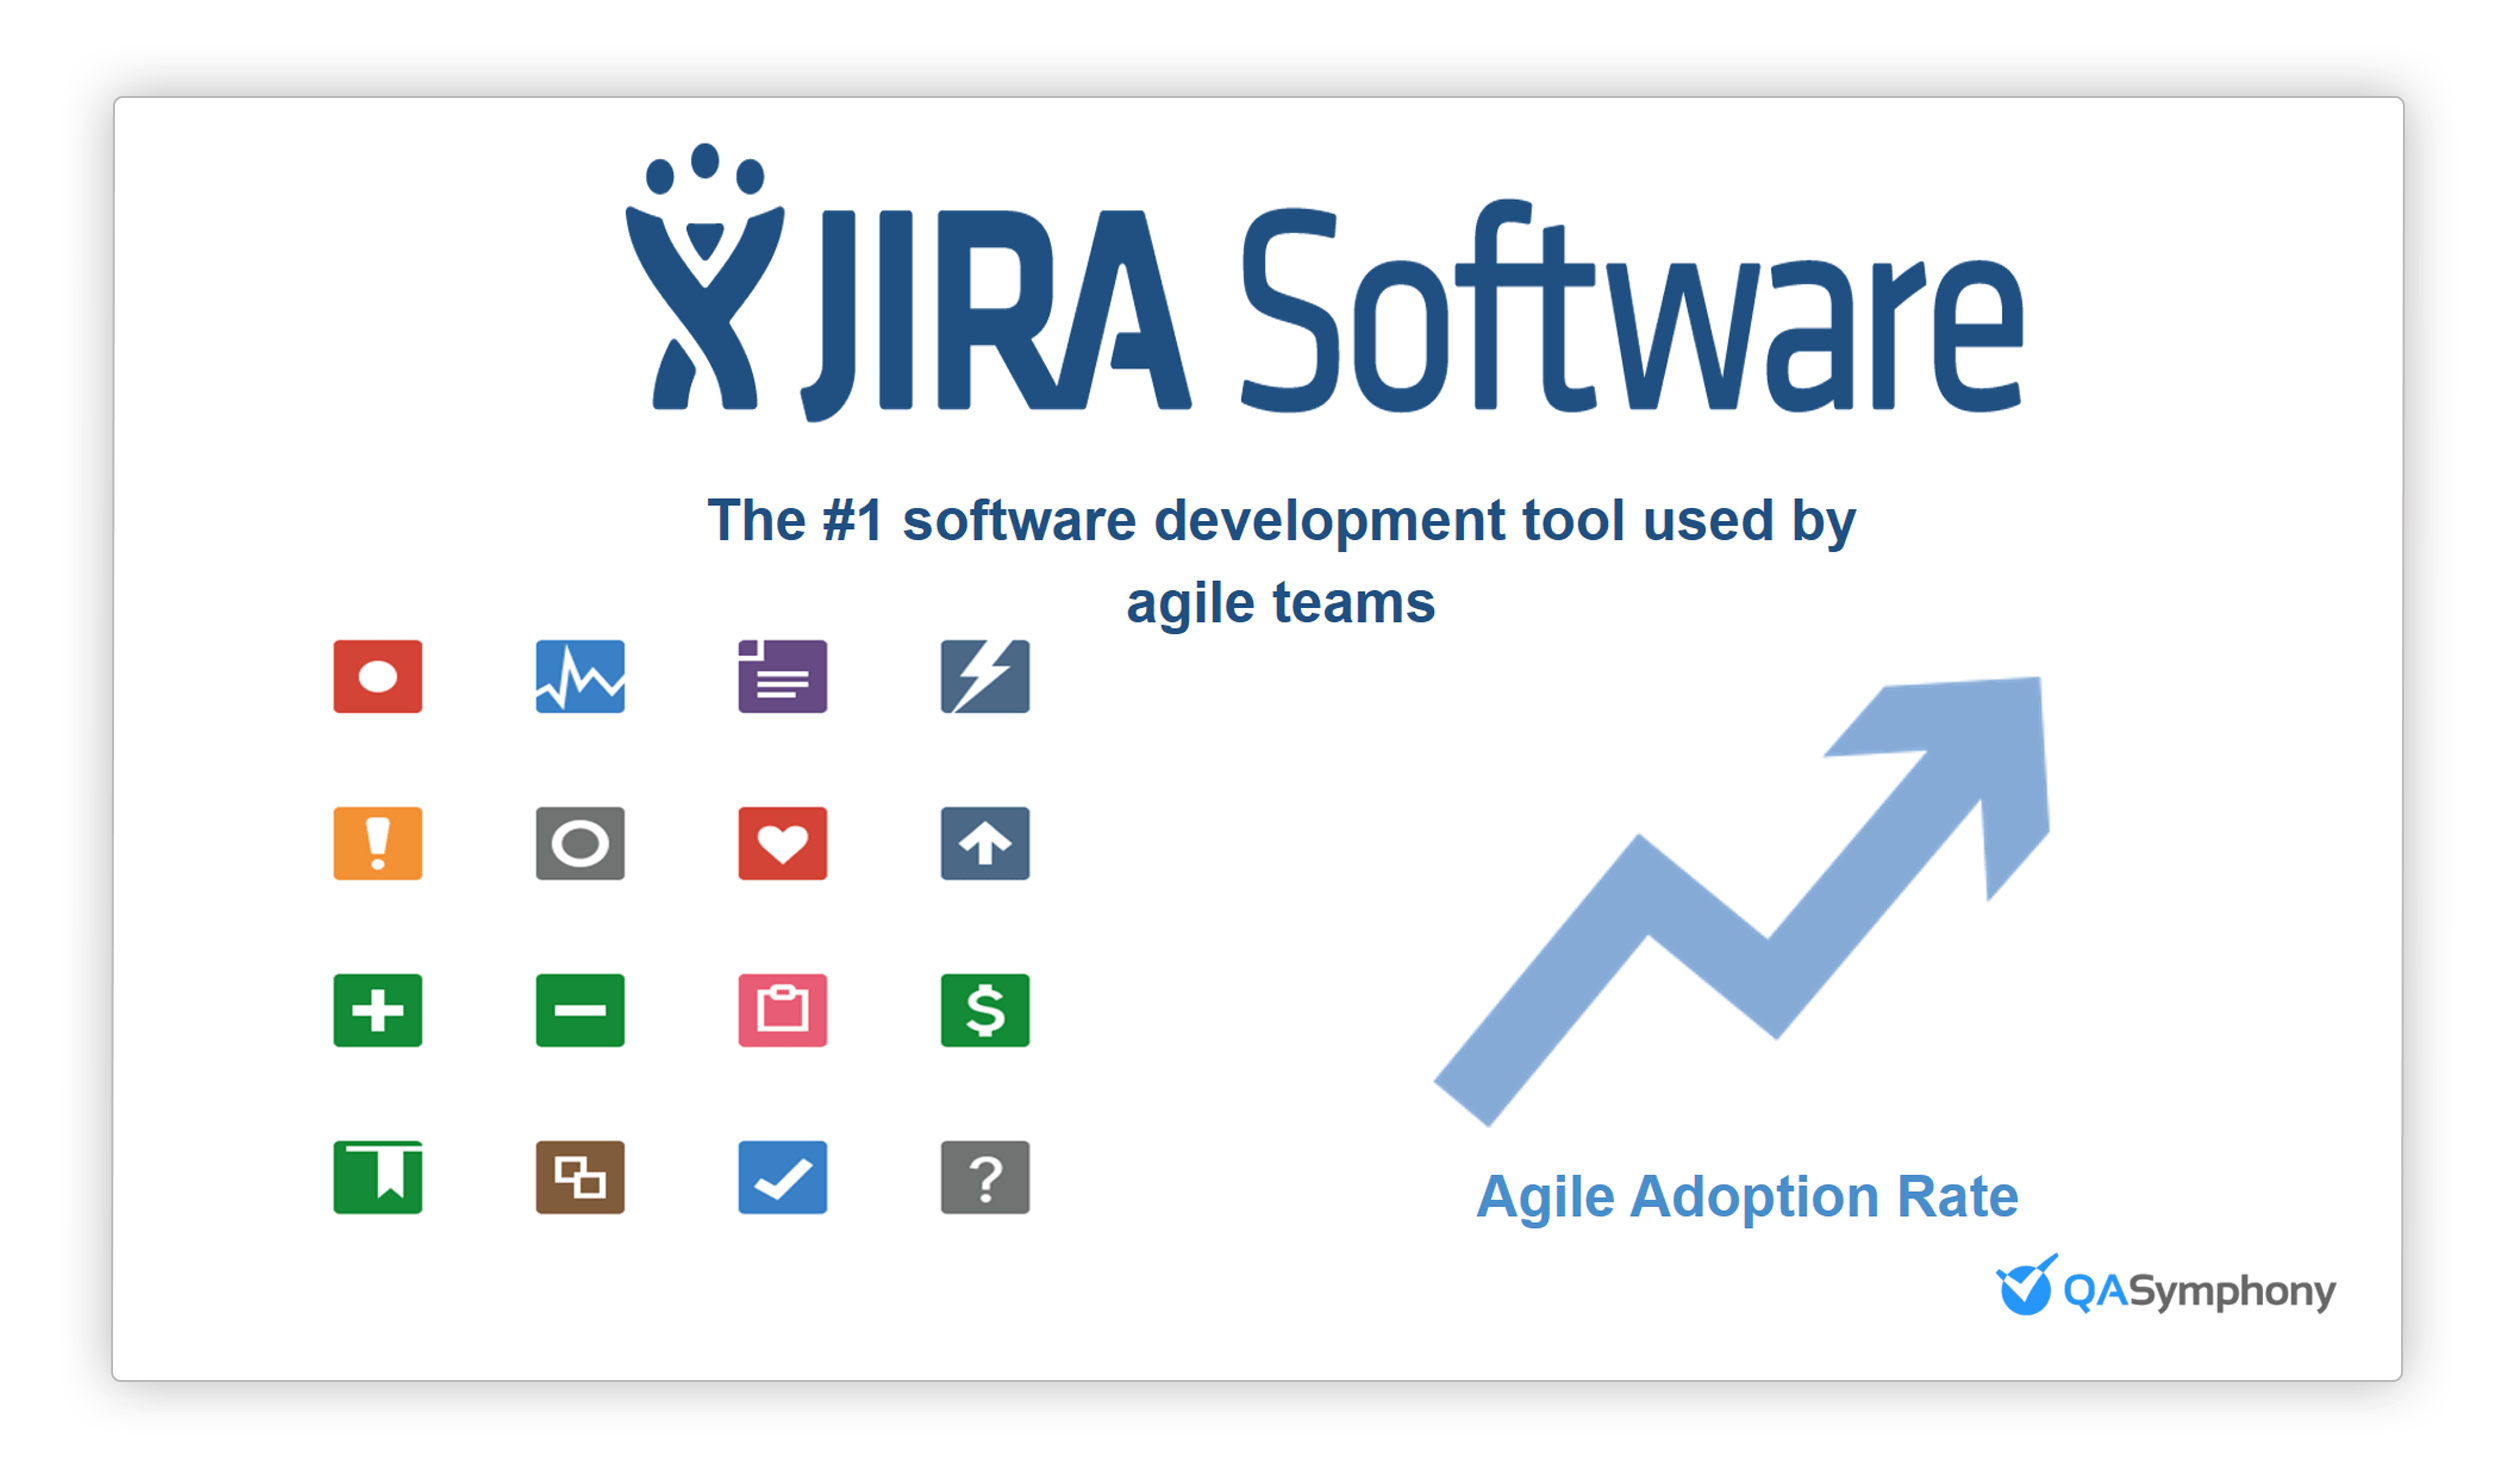 JIRA for test case management - number one for agile teams